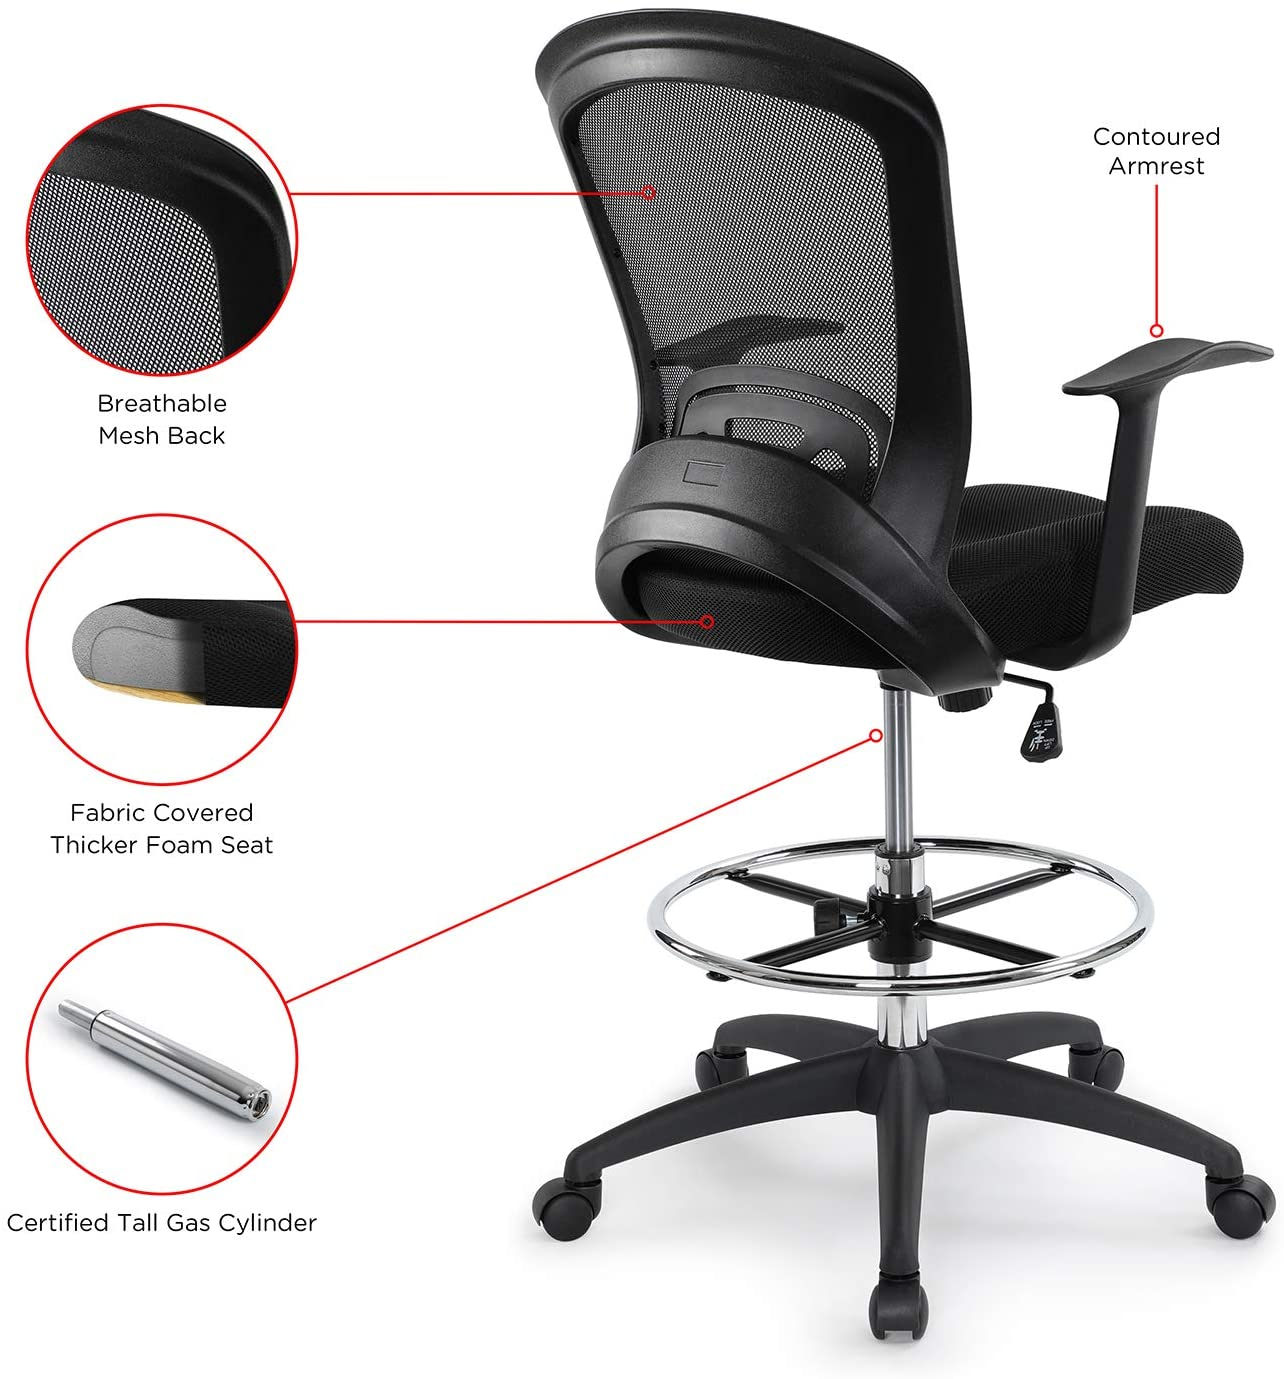 71DY3pz29XL. AC SL1500 - What Is The Best Drafting Chair For Standing Desk - ChairPicks